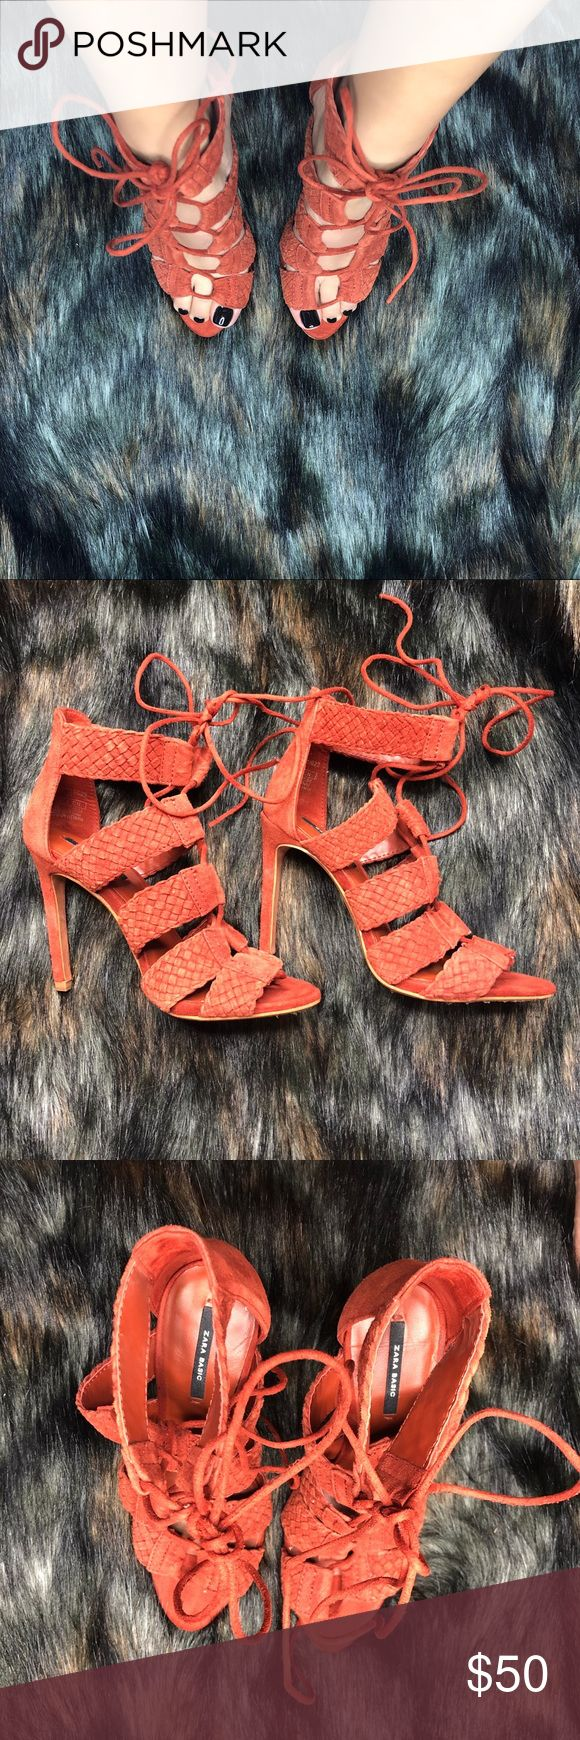 Zara burnt orange strappy heels Condition: perfect! Never been worn and very comfortable  Size: 36  No box Zara Shoes Heels